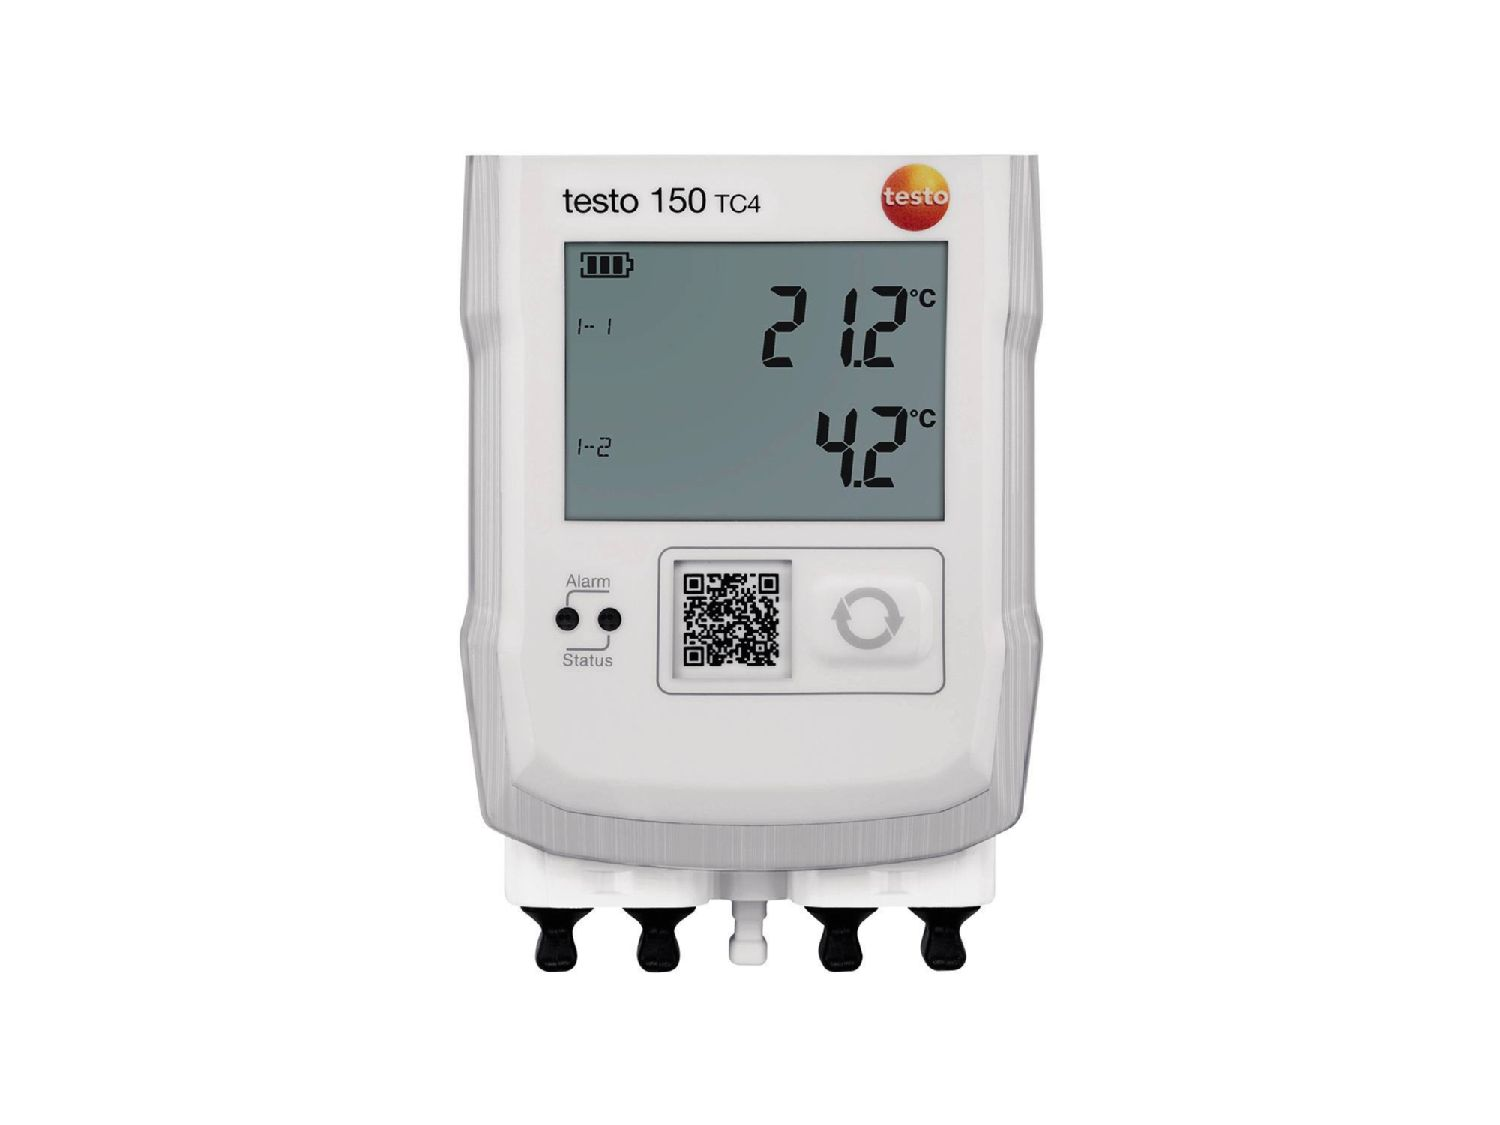 testo 150 TC4 data logger